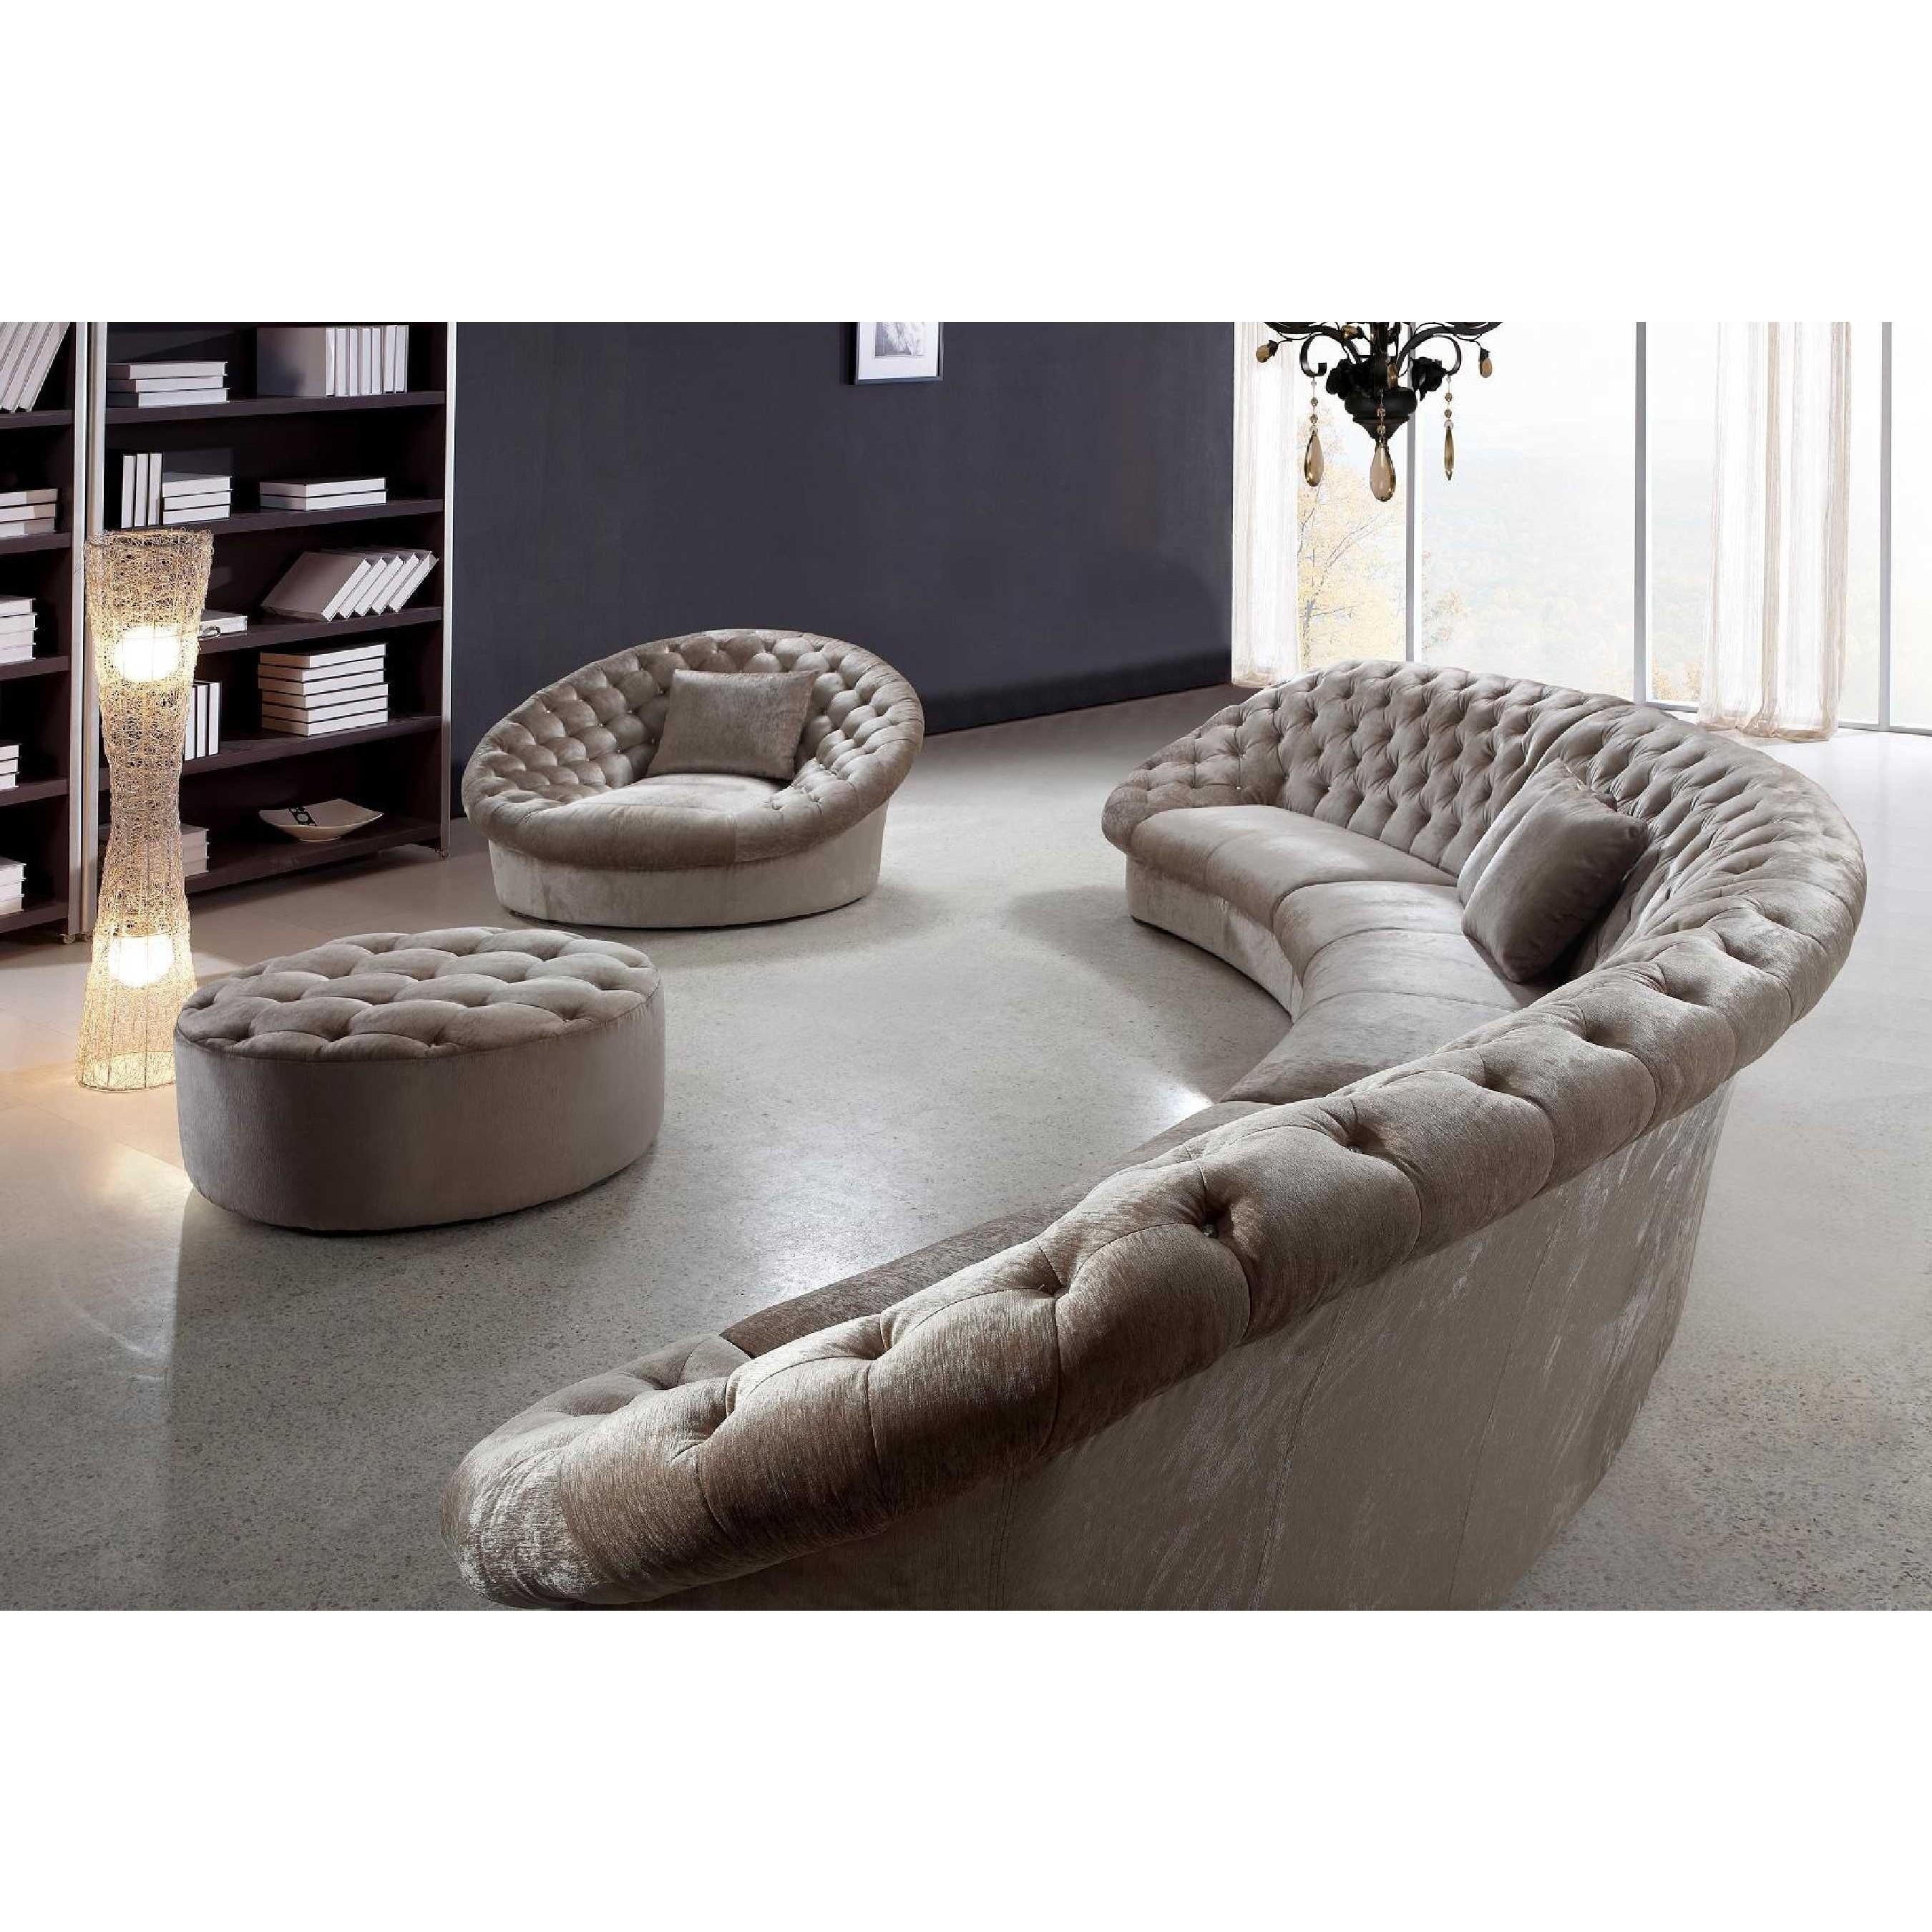 Sofas Center : Circle Sectional Sofa Curved Set Rich Comfortable Intended For Circle Sectional (Image 13 of 15)